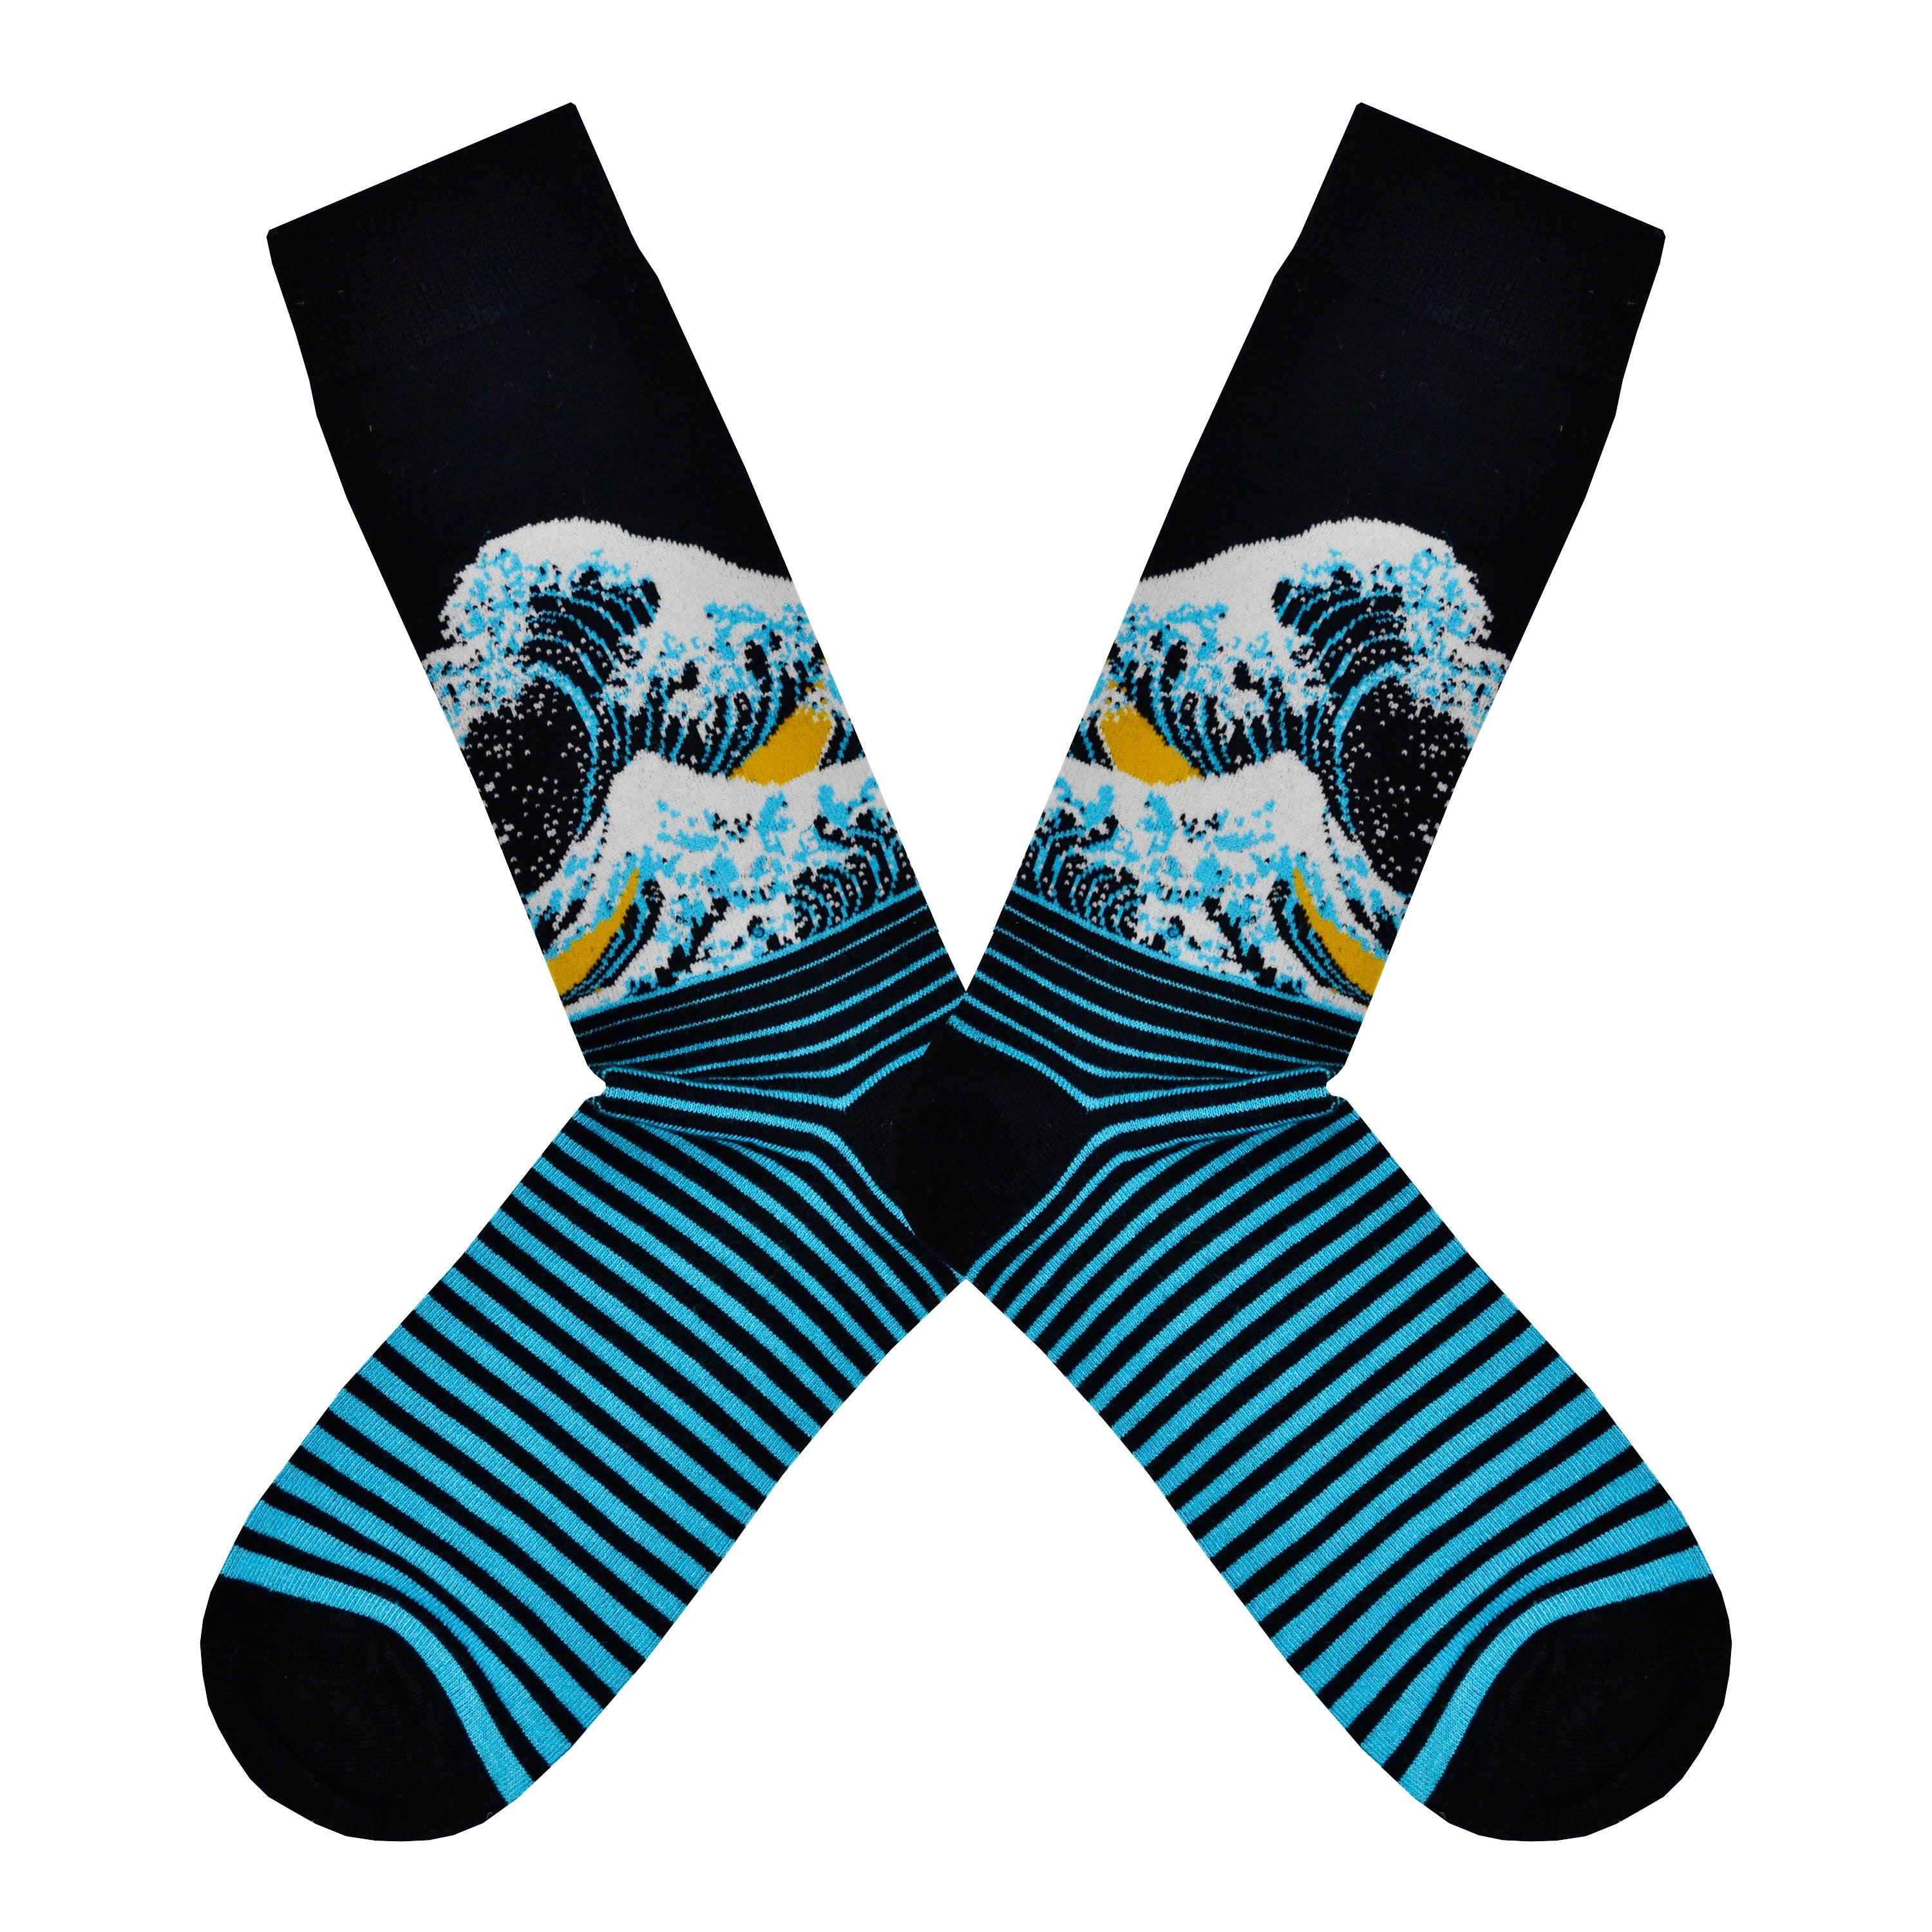 The wave sock